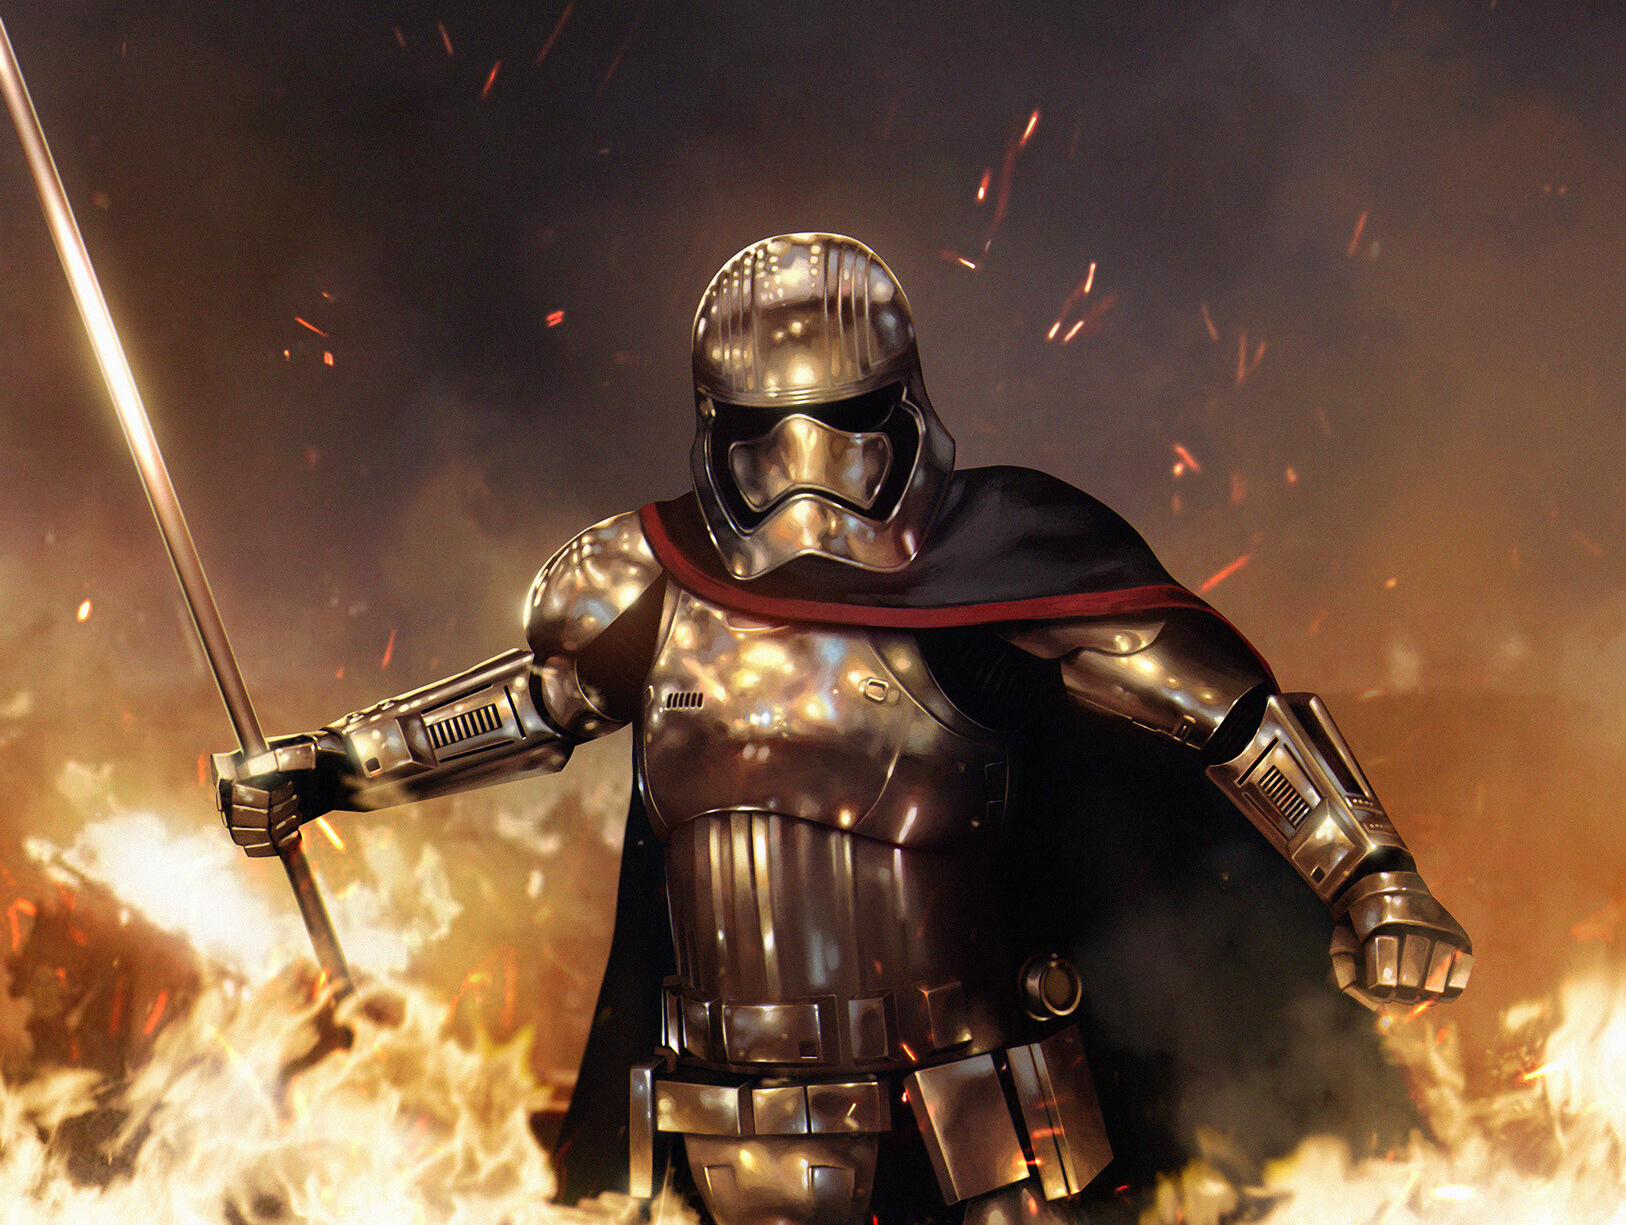 Captain_Phasma_Stormtrooper_Leader_SWD.png